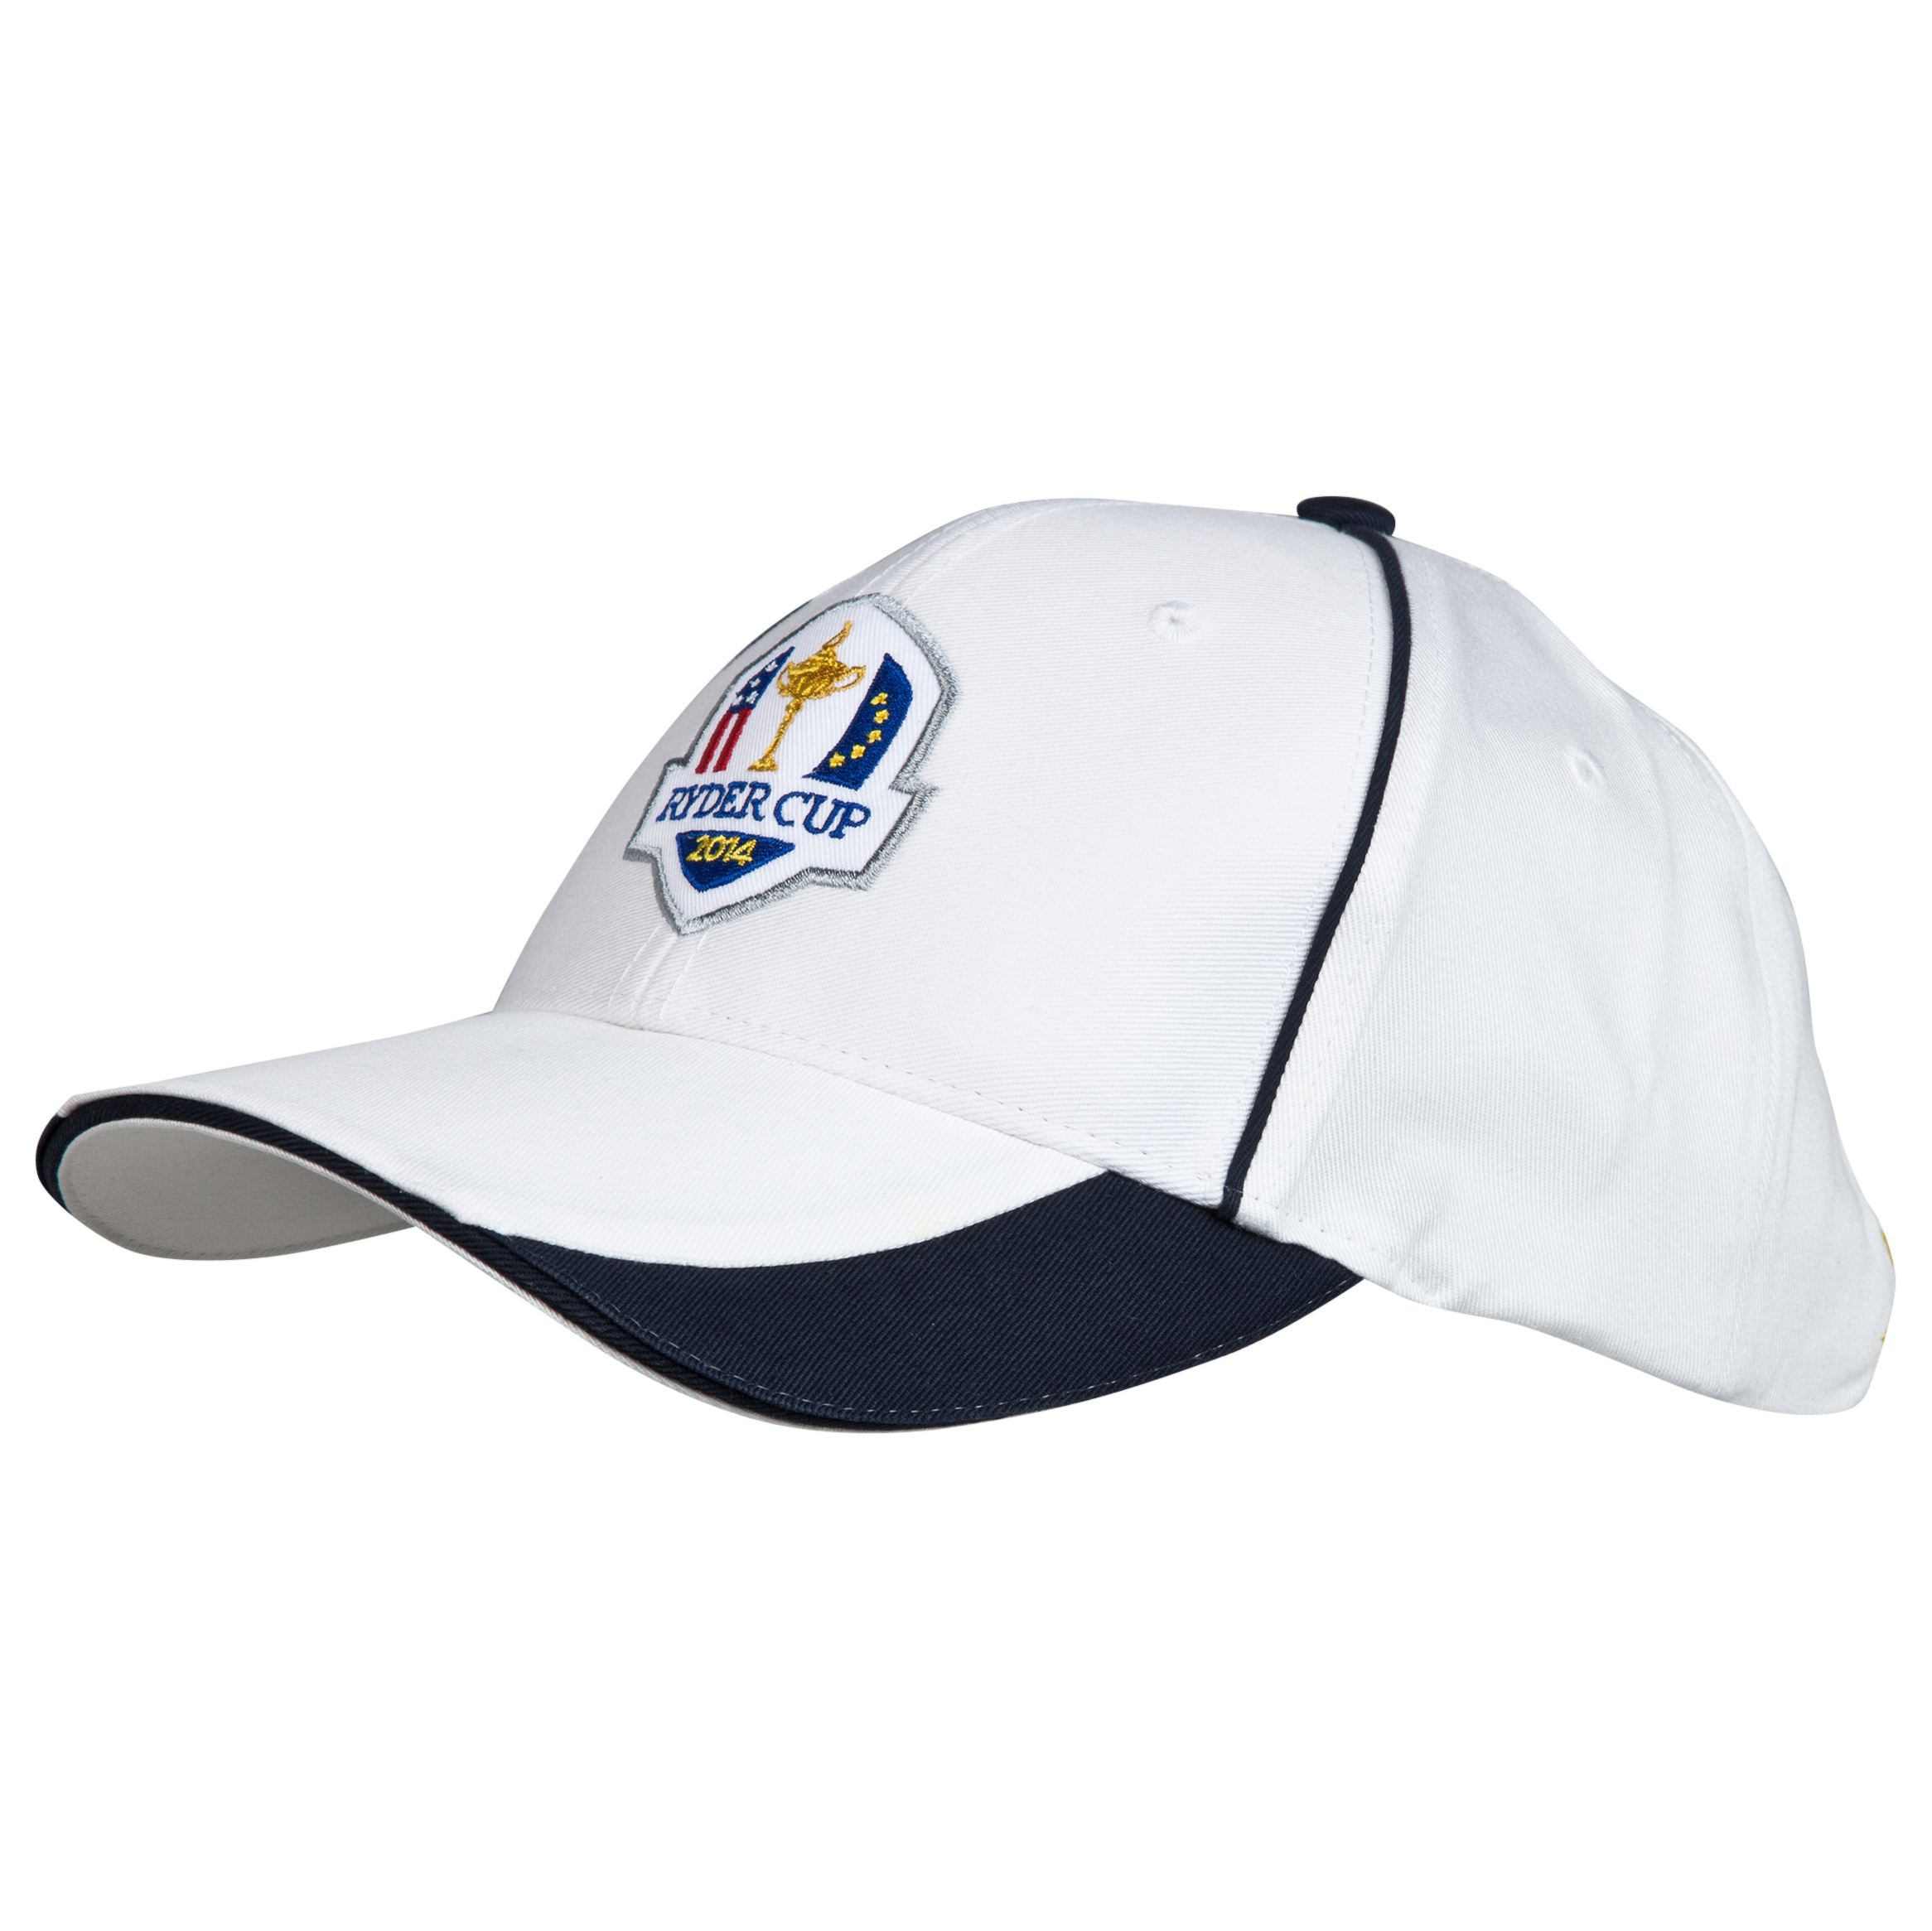 The 2014 Ryder Cup Glenmuir Fanwear Vorlich Cap - White / Navy